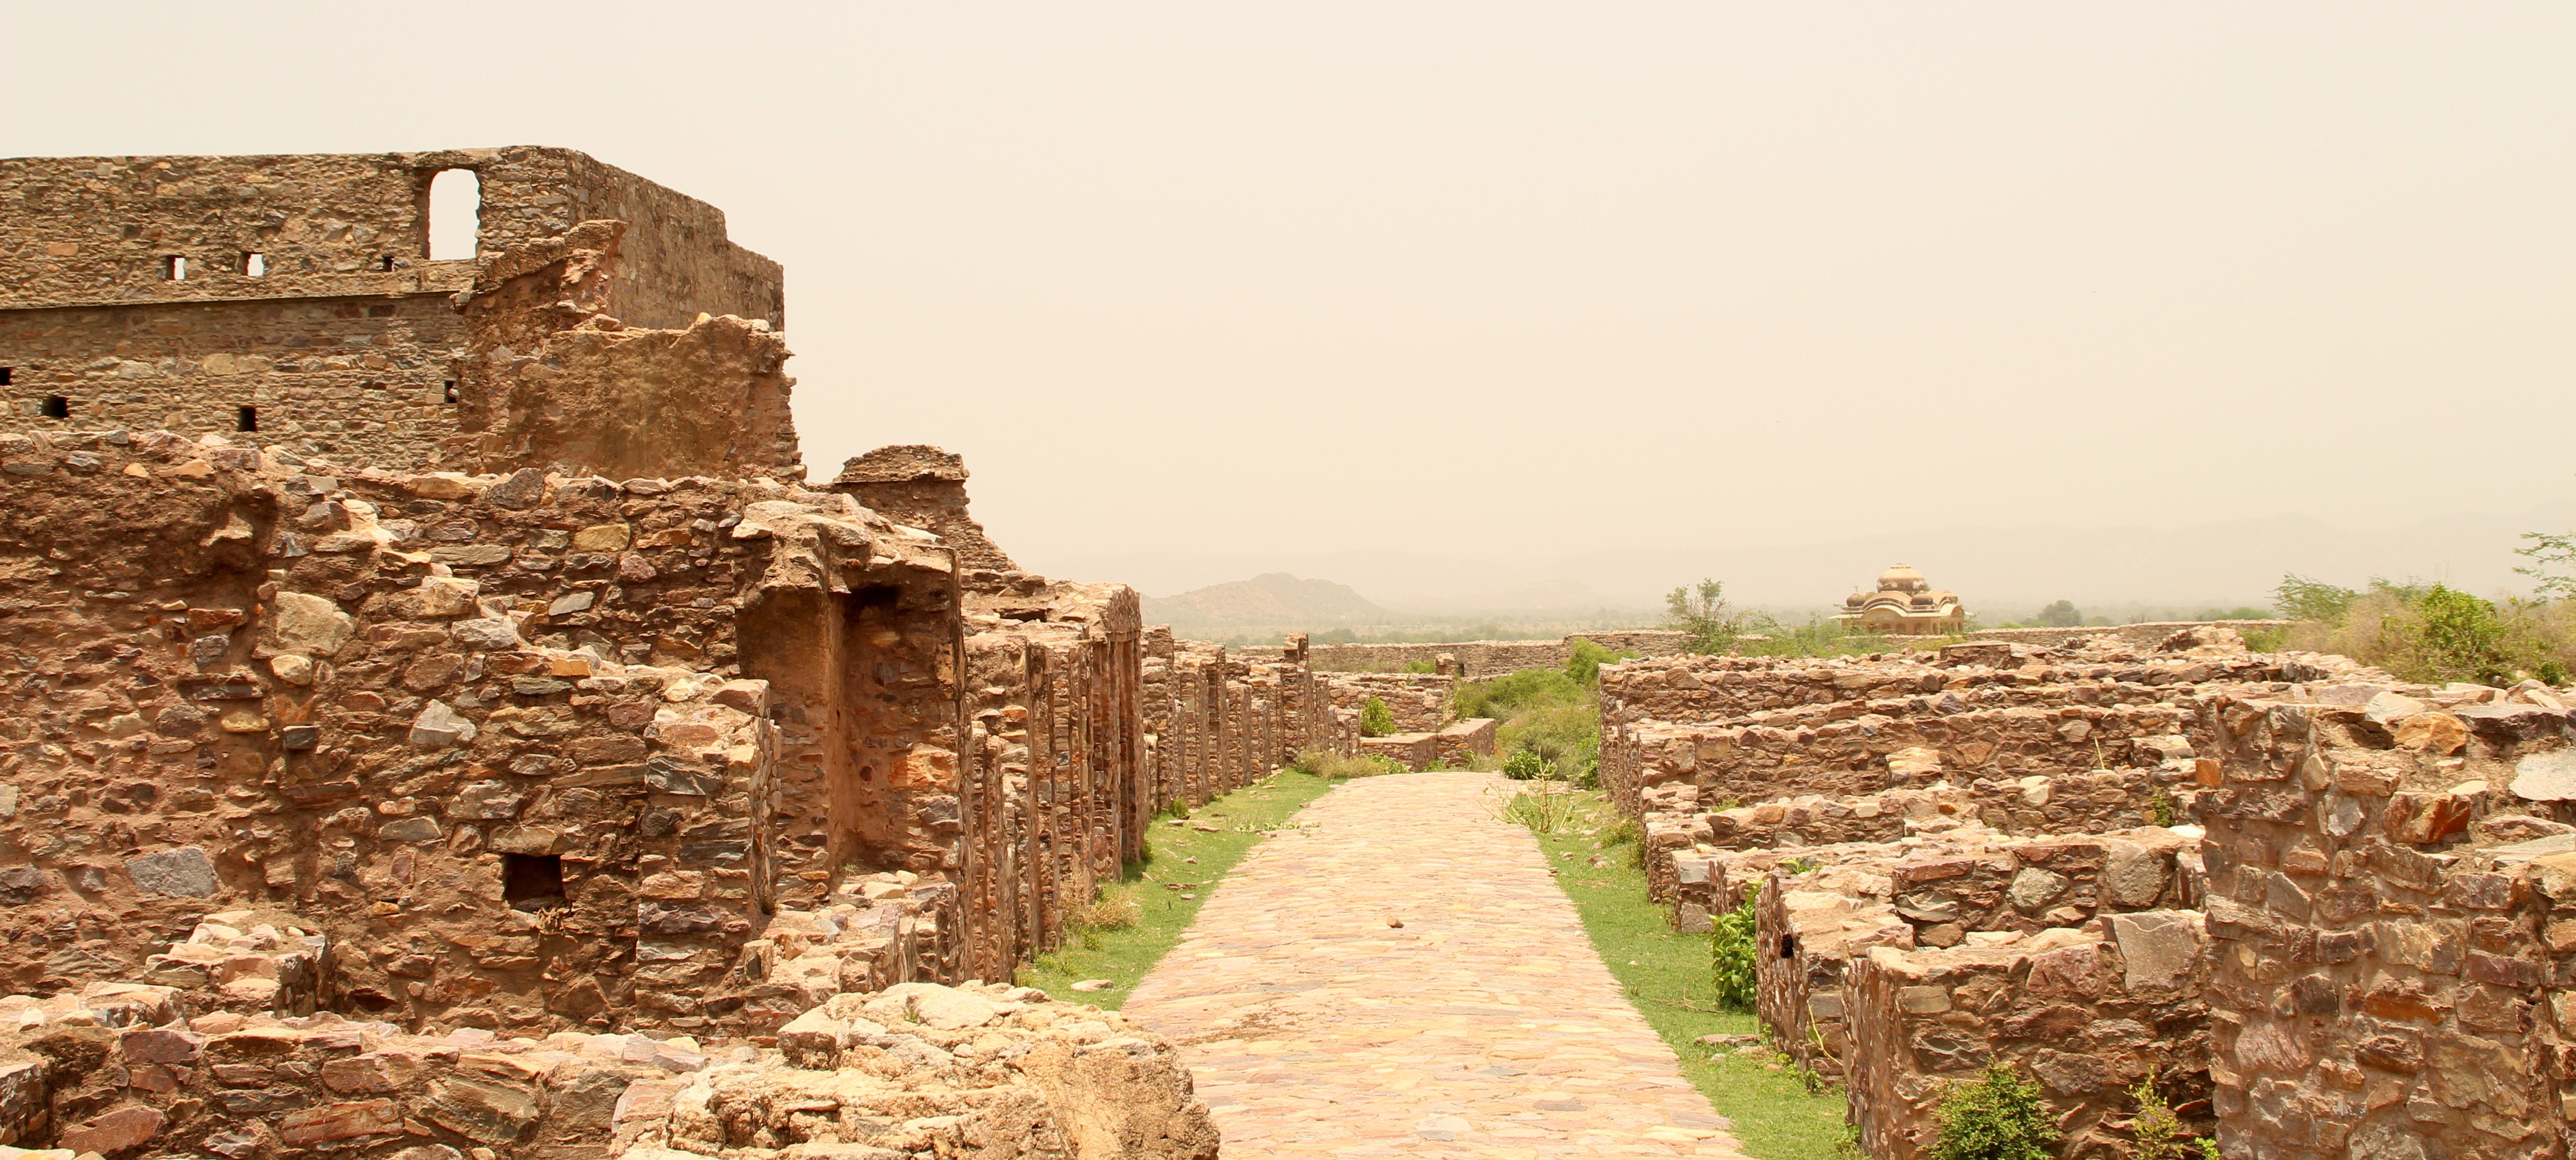 """The Bhangarh Fort Story Behind The Mystery Of The Most """"Haunted"""" Place In India"""